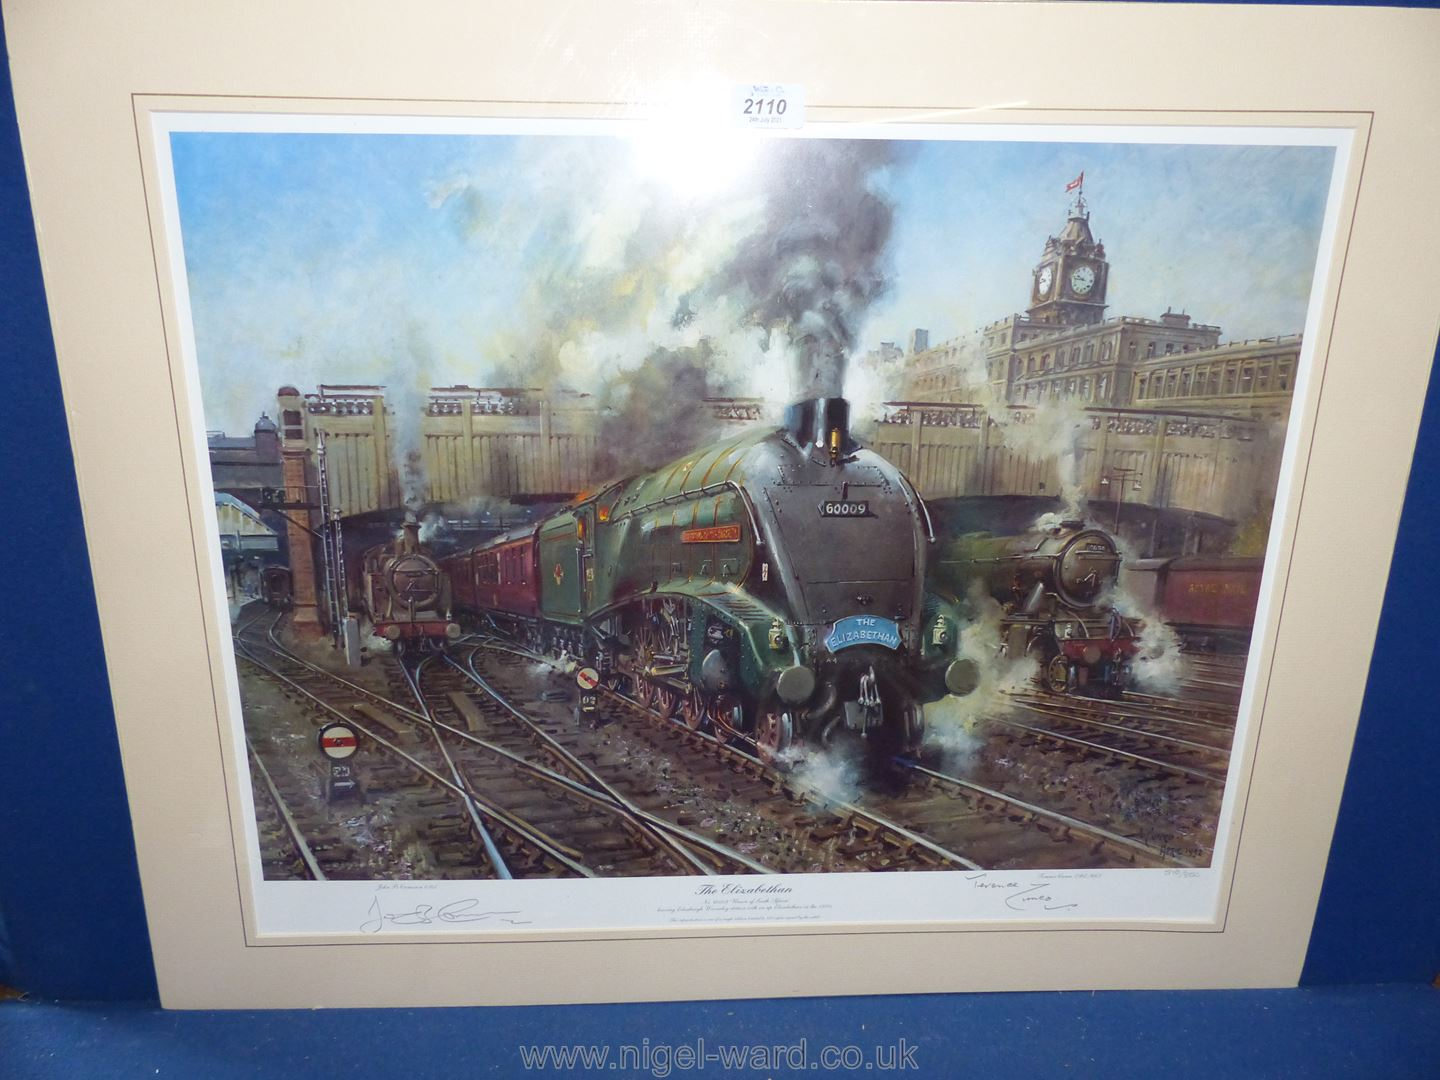 A Terence Cuneo pencil signed limited edition print of a train 'The Elizabethan' leaving